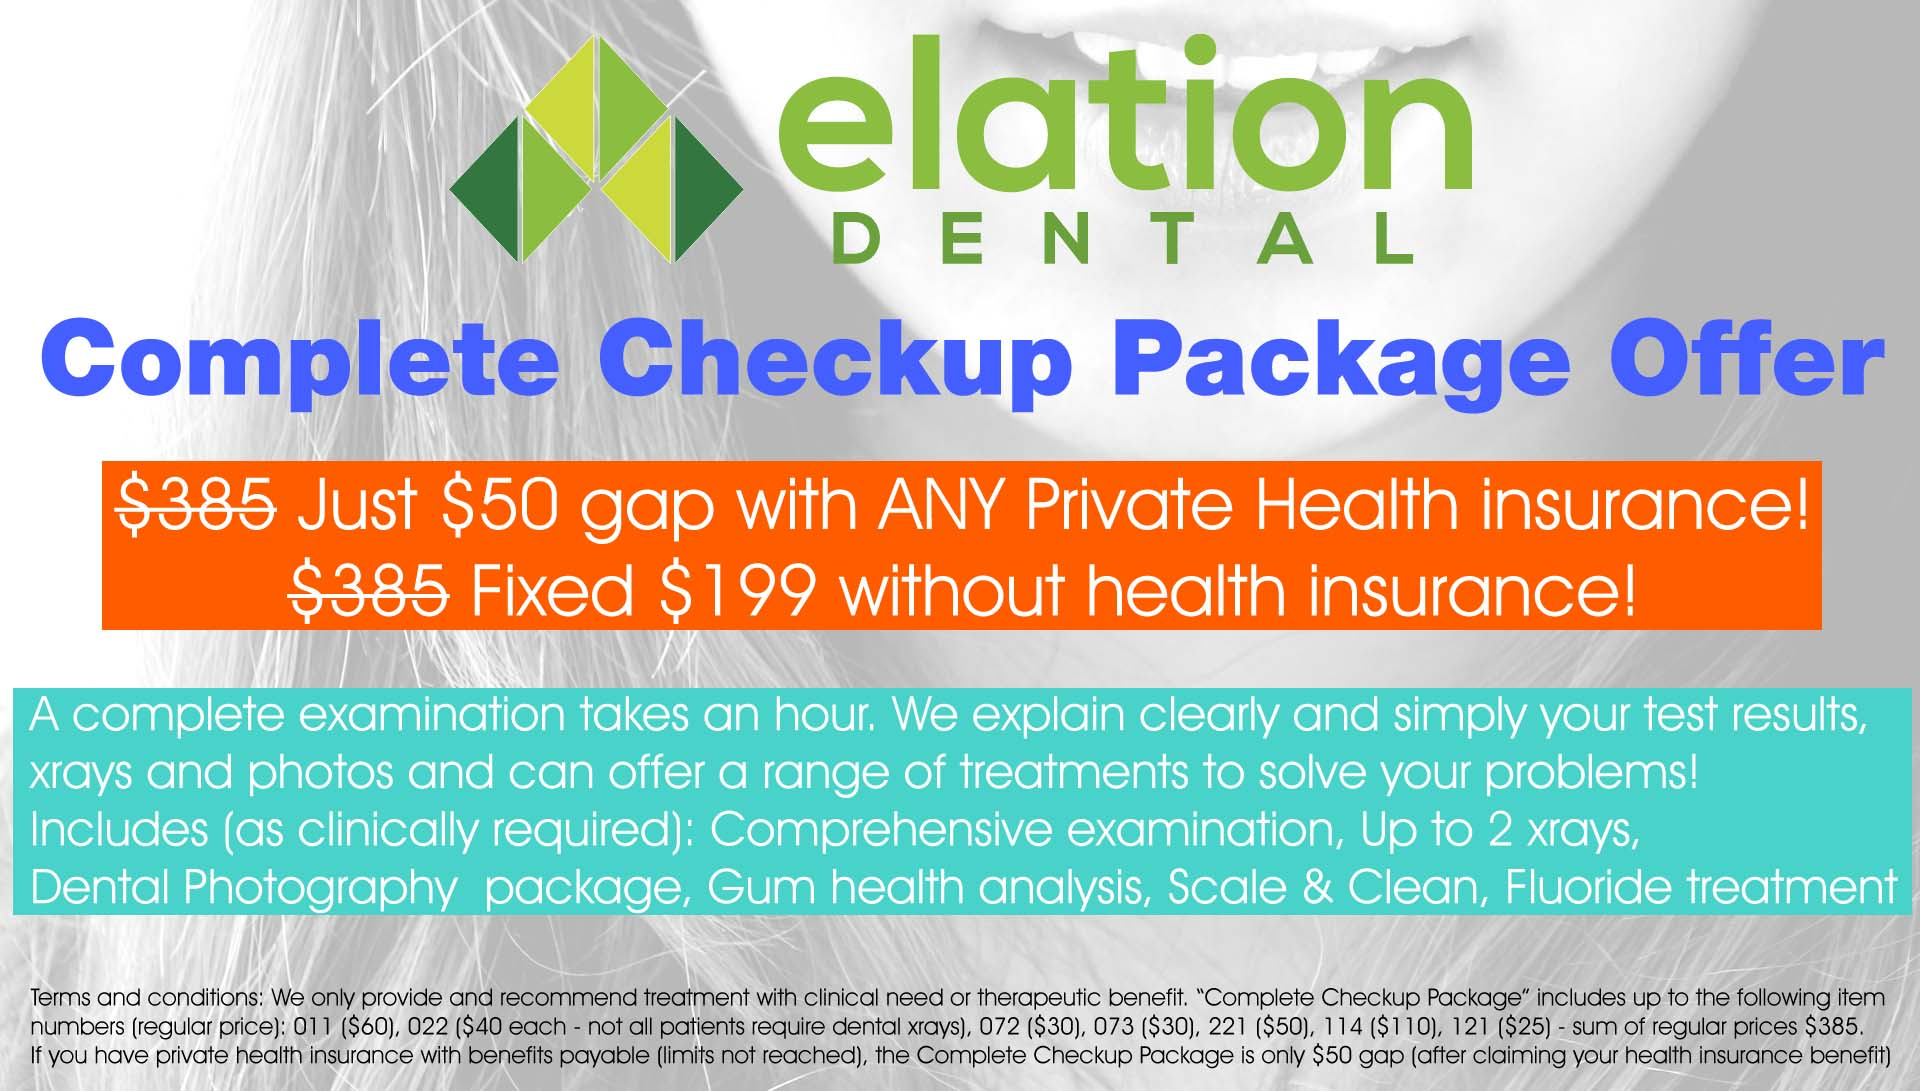 Complete Dental Checkup Package